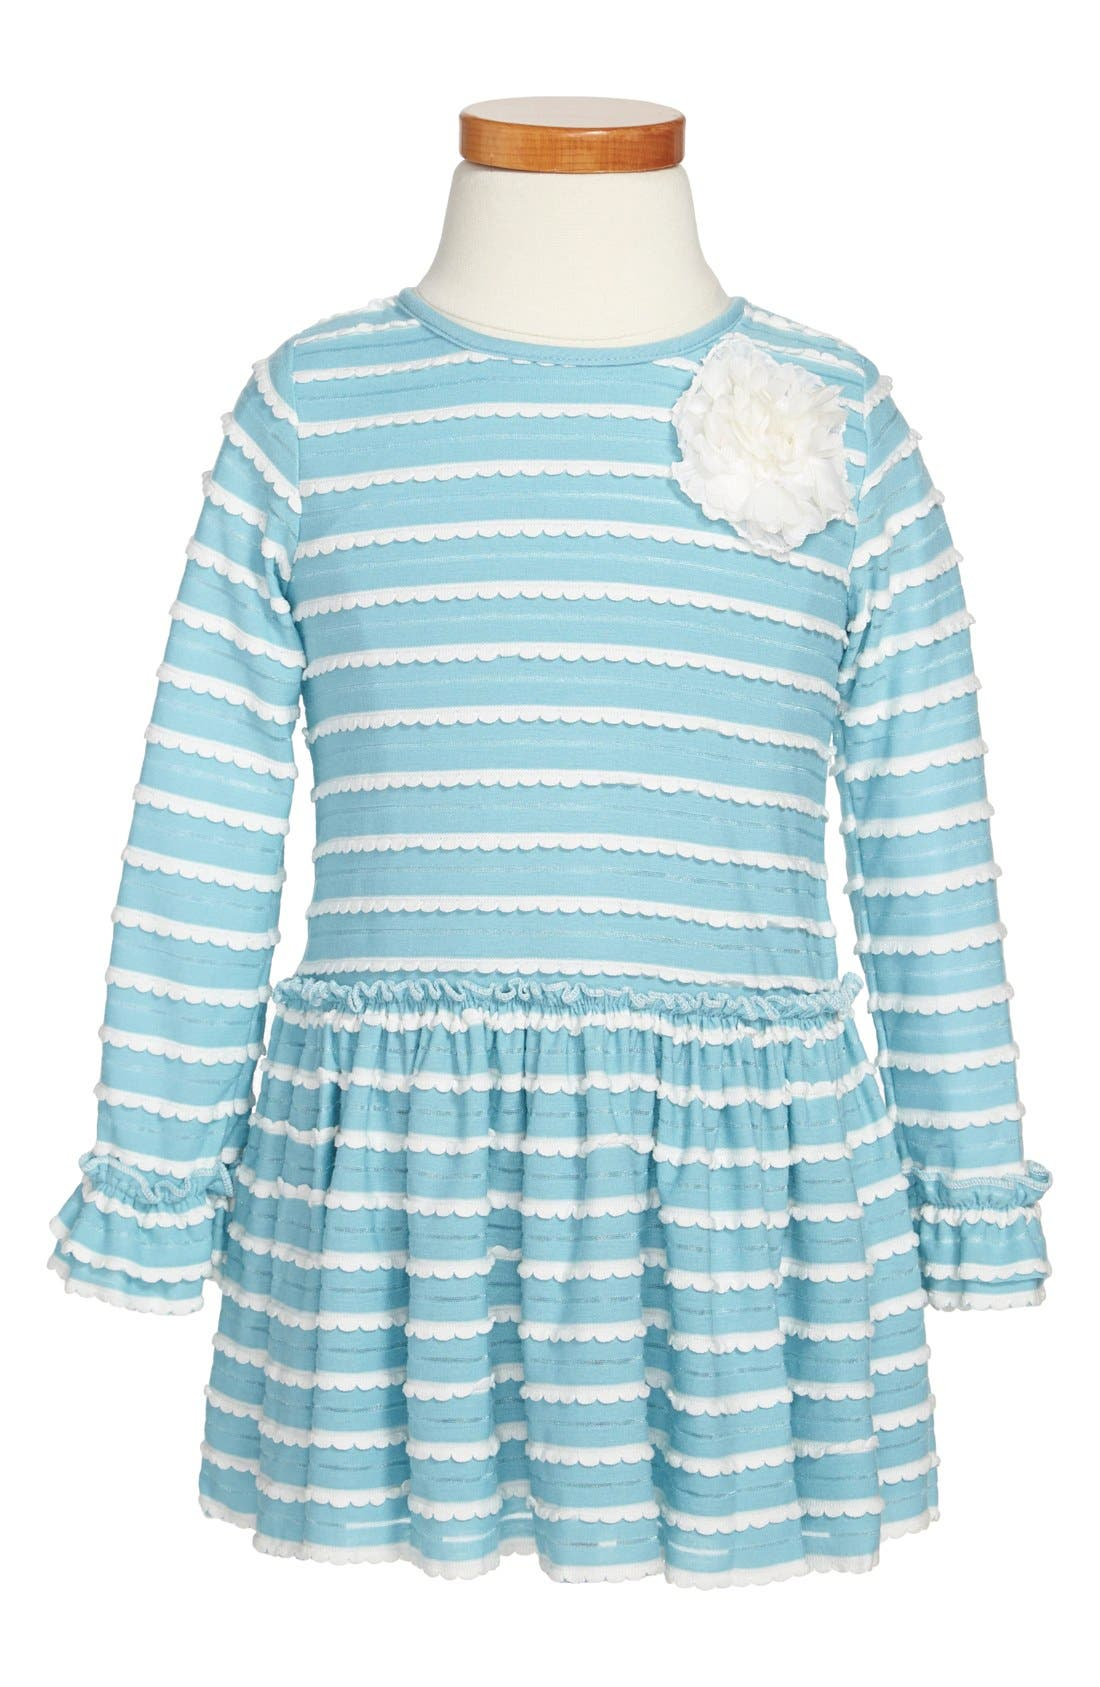 Main Image - Pippa & Julie Scallop Knit Dress (Toddler Girls & Little Girls)